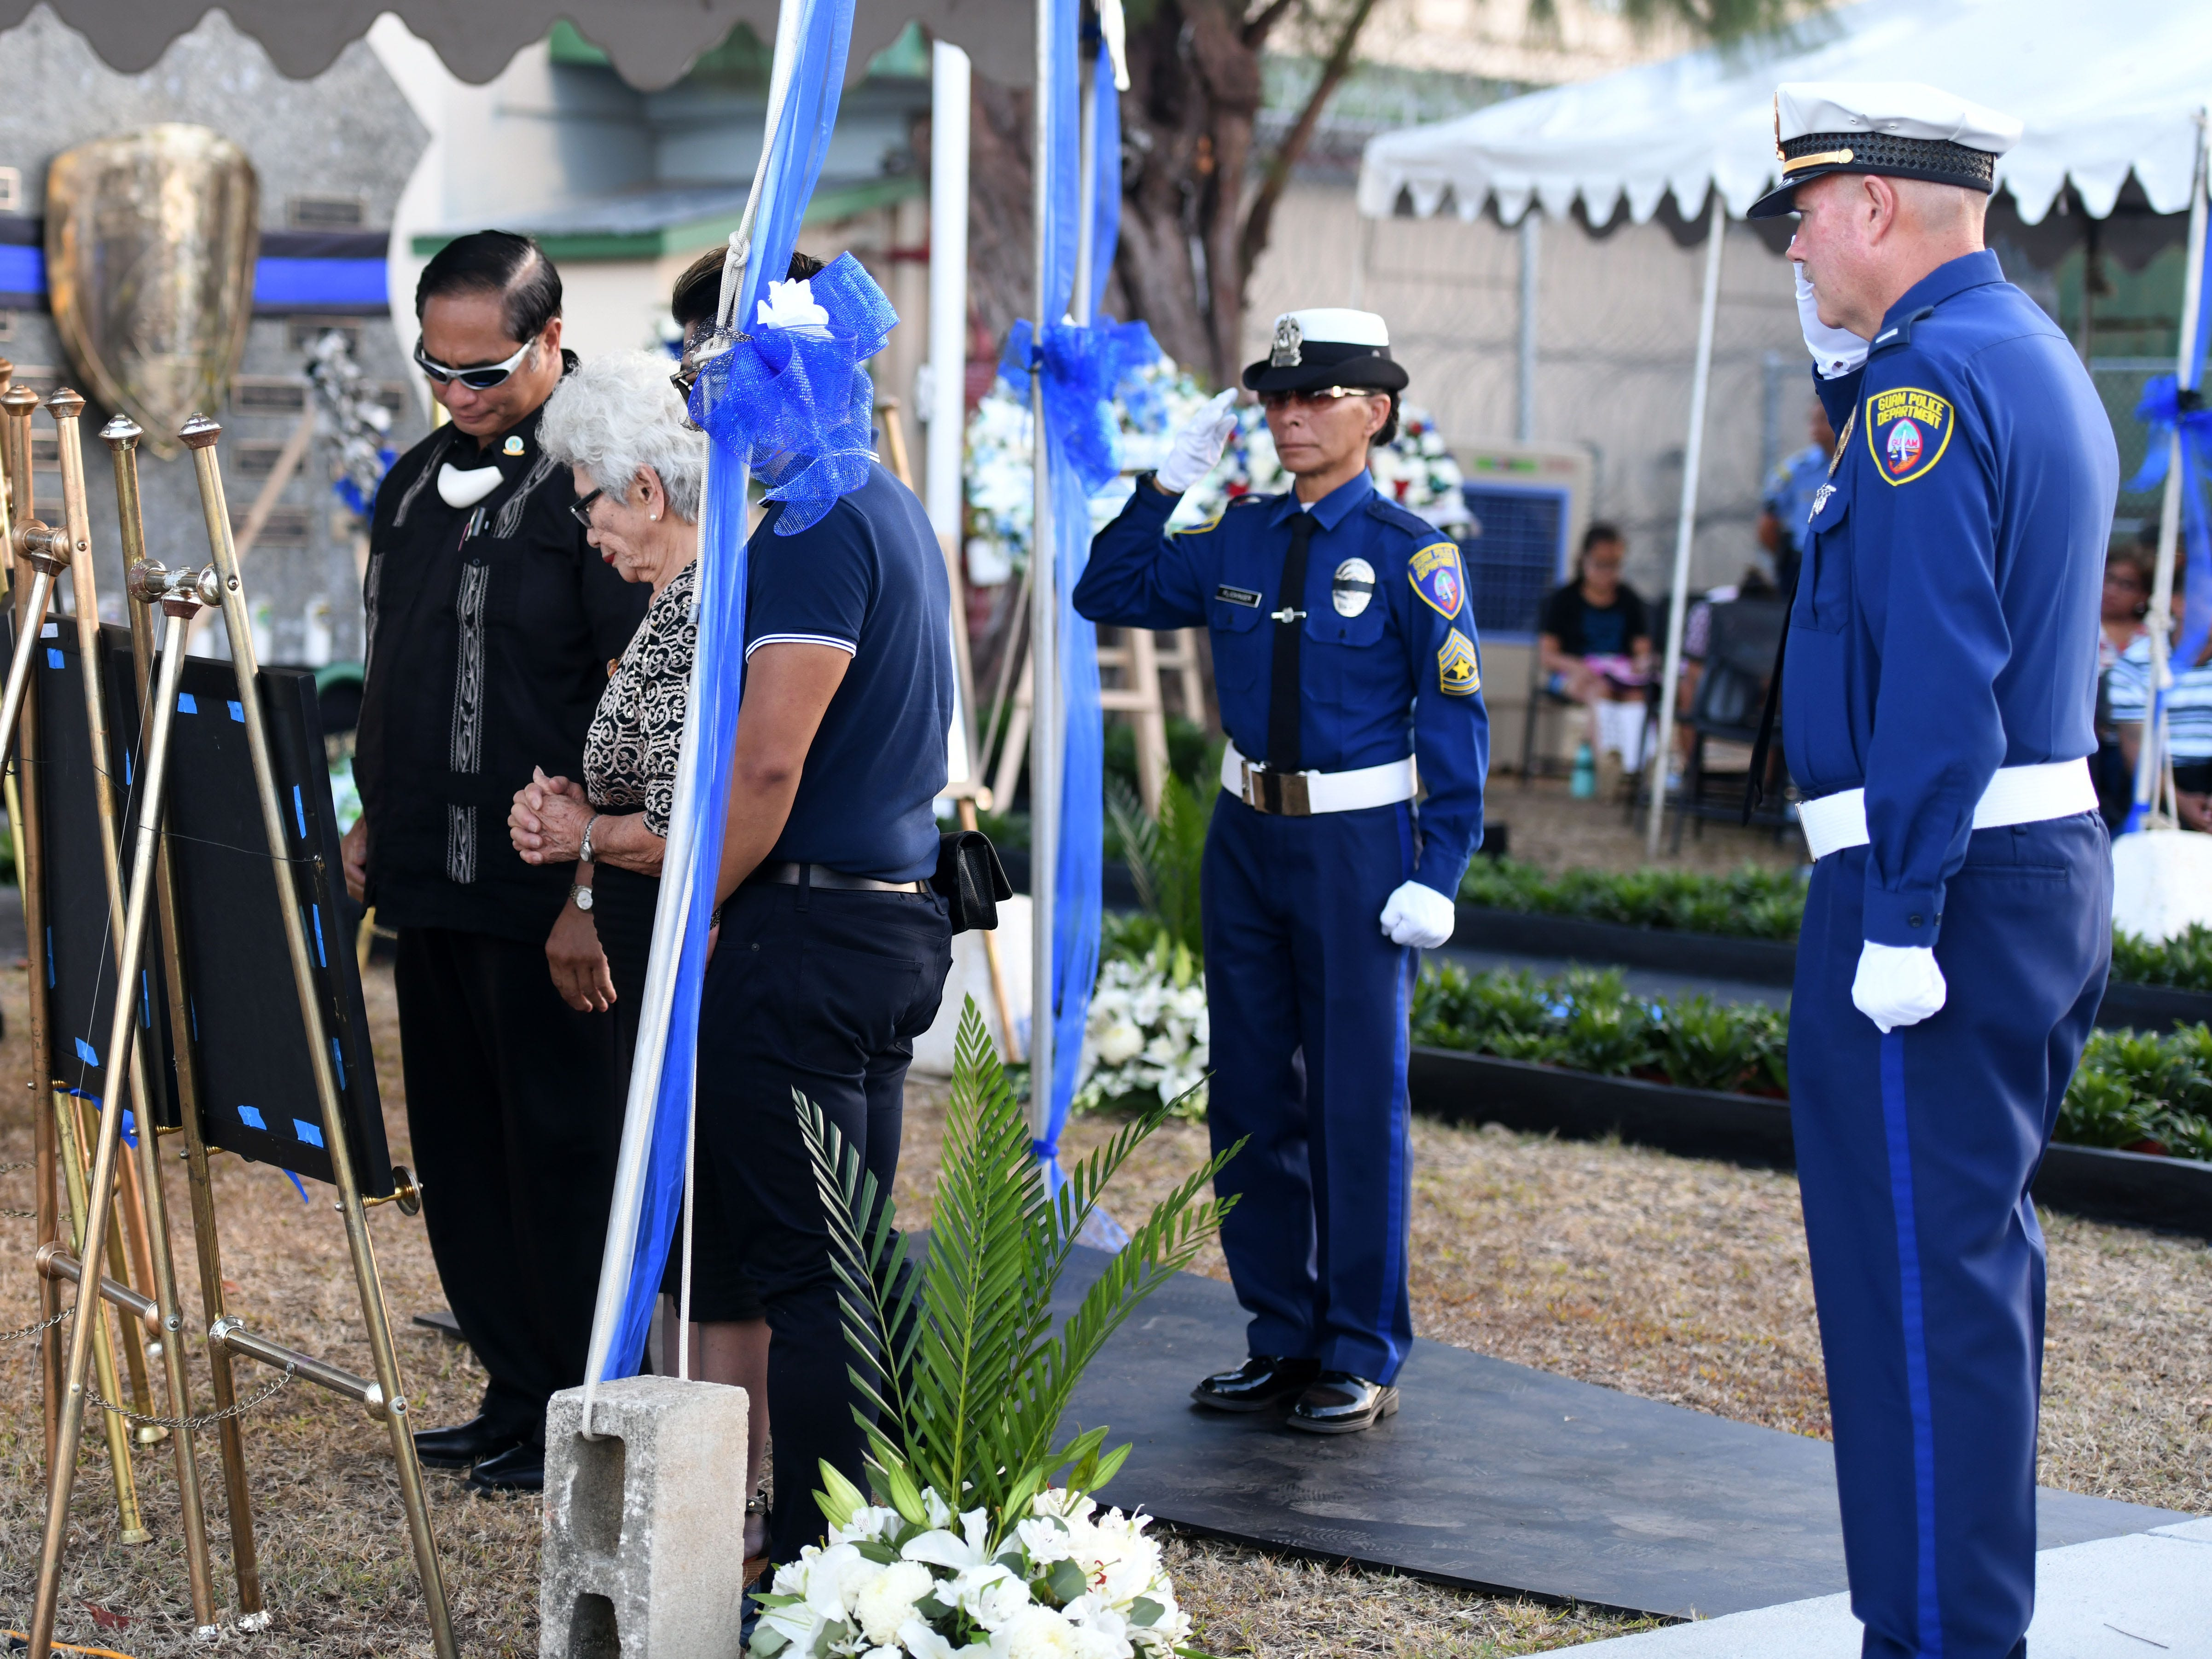 The service of Police Lt. Francisco Toves is remembered during the Peace Officers' Memorial Service and Wreath Laying Ceremony held at the Guam Police Department's Badge Memorial Park in Hagåtña on Wednesday, May 15, 2019.